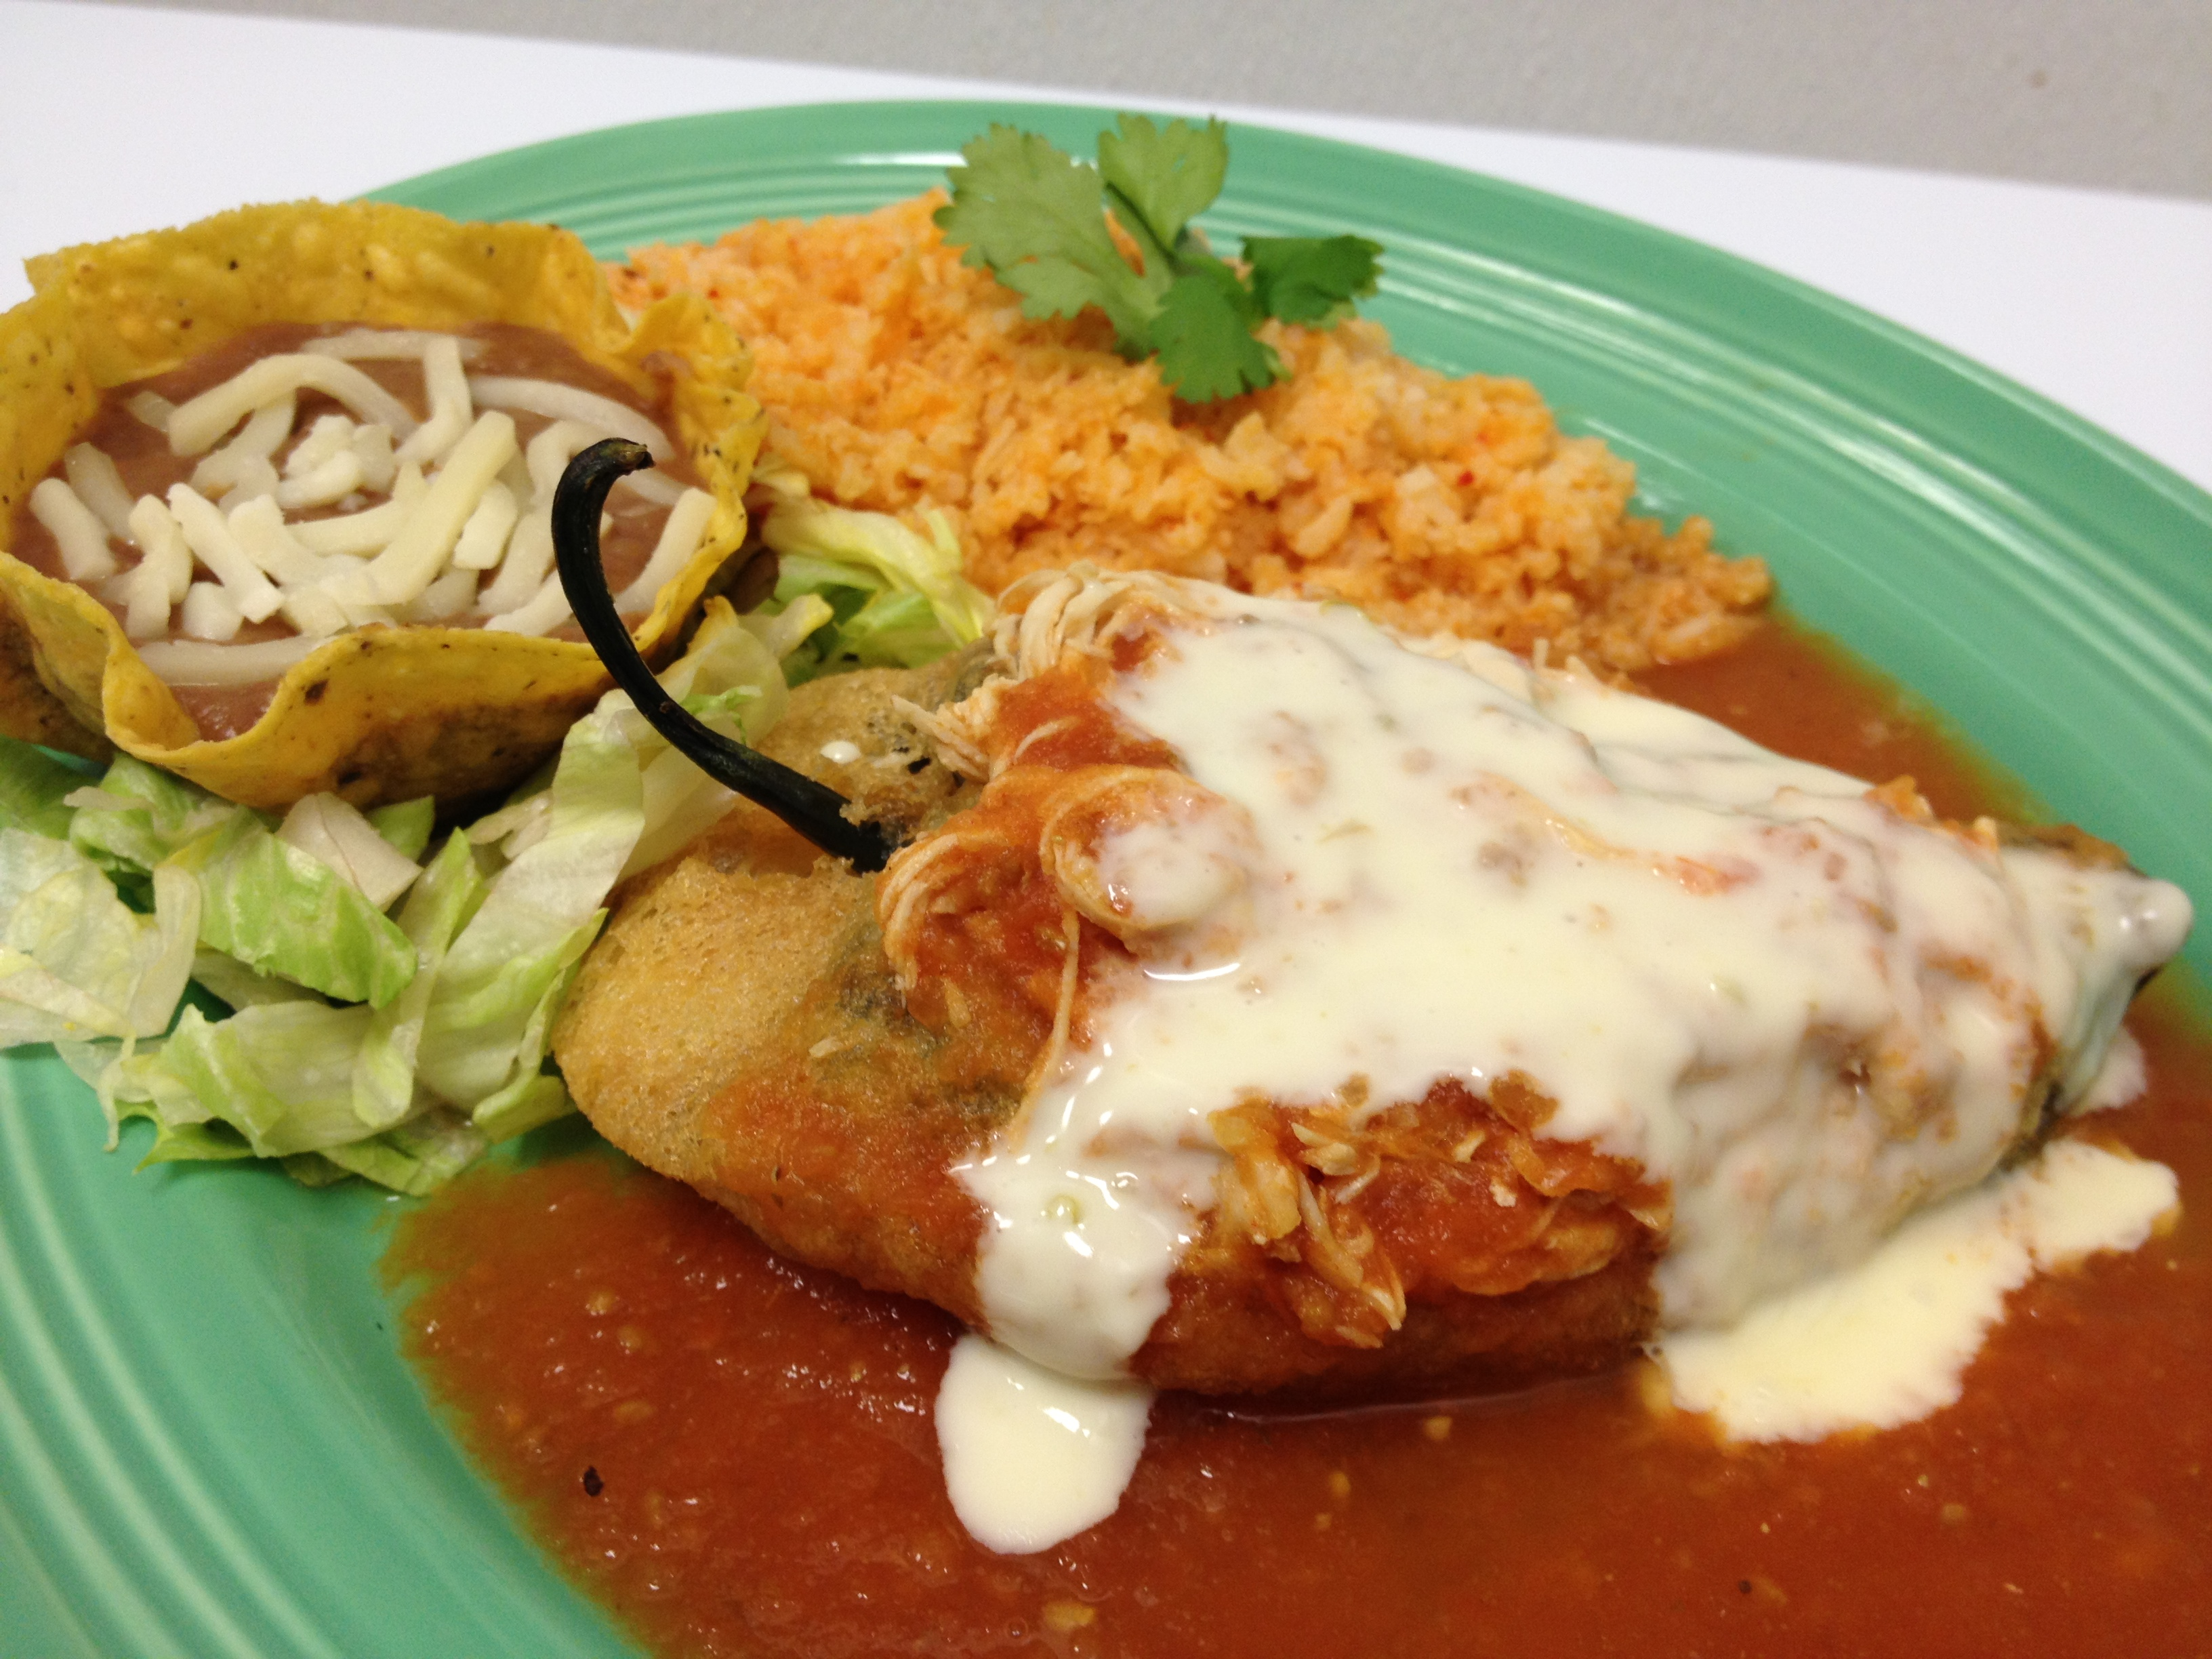 Chile Relleno beef, Cheese Or Chicken For 25